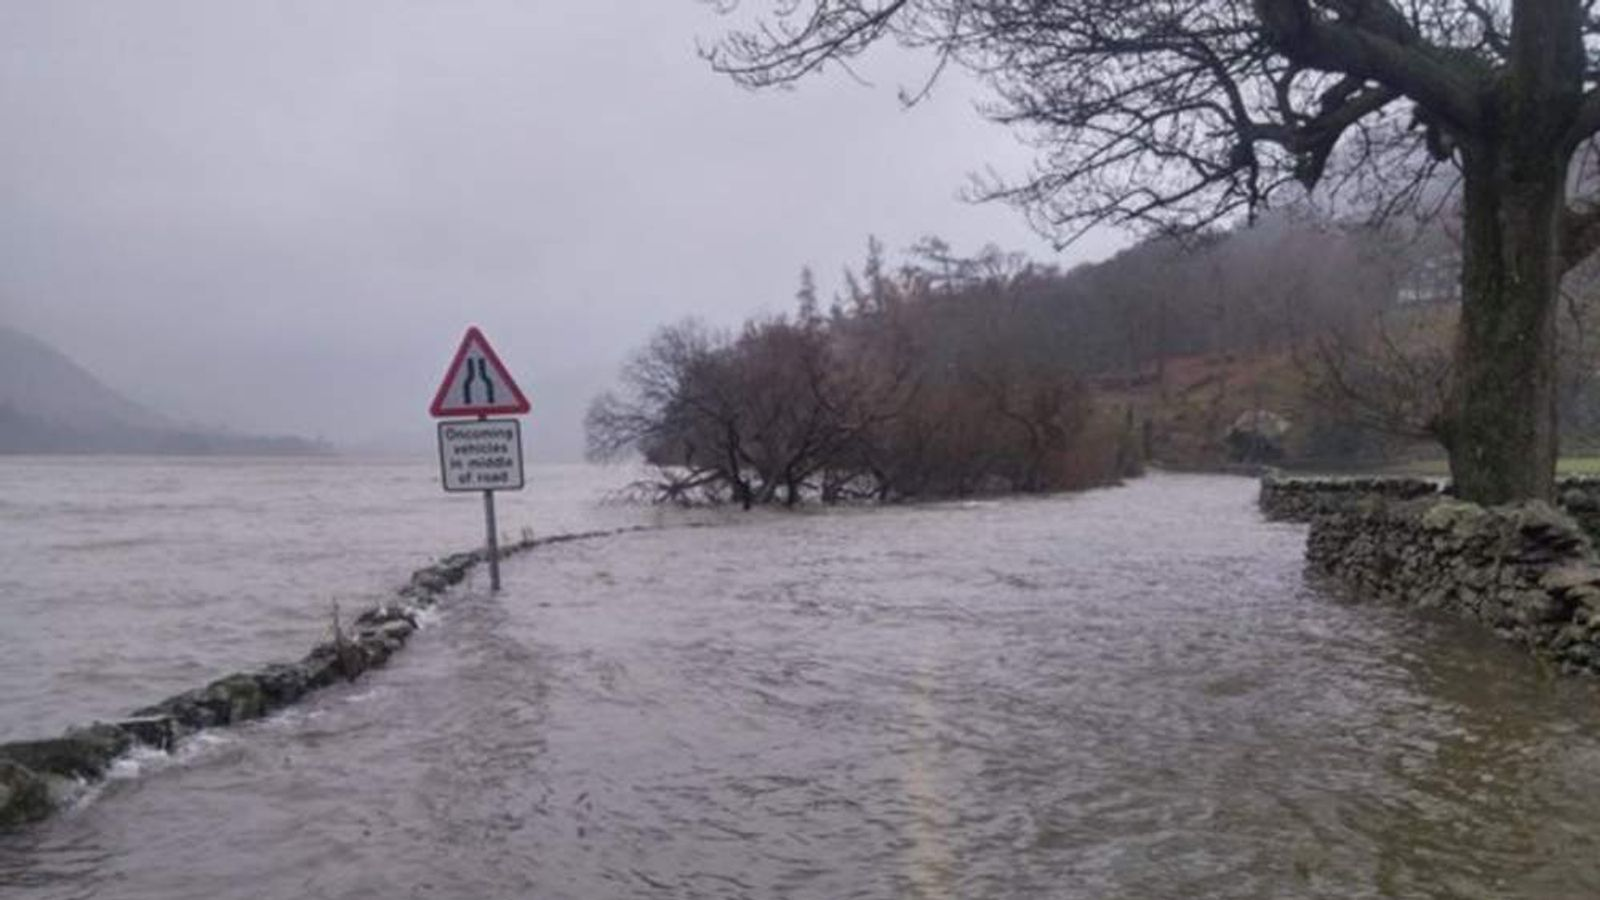 Pictures of Glenridding, Cumbria, where Ullswater has broken its banks